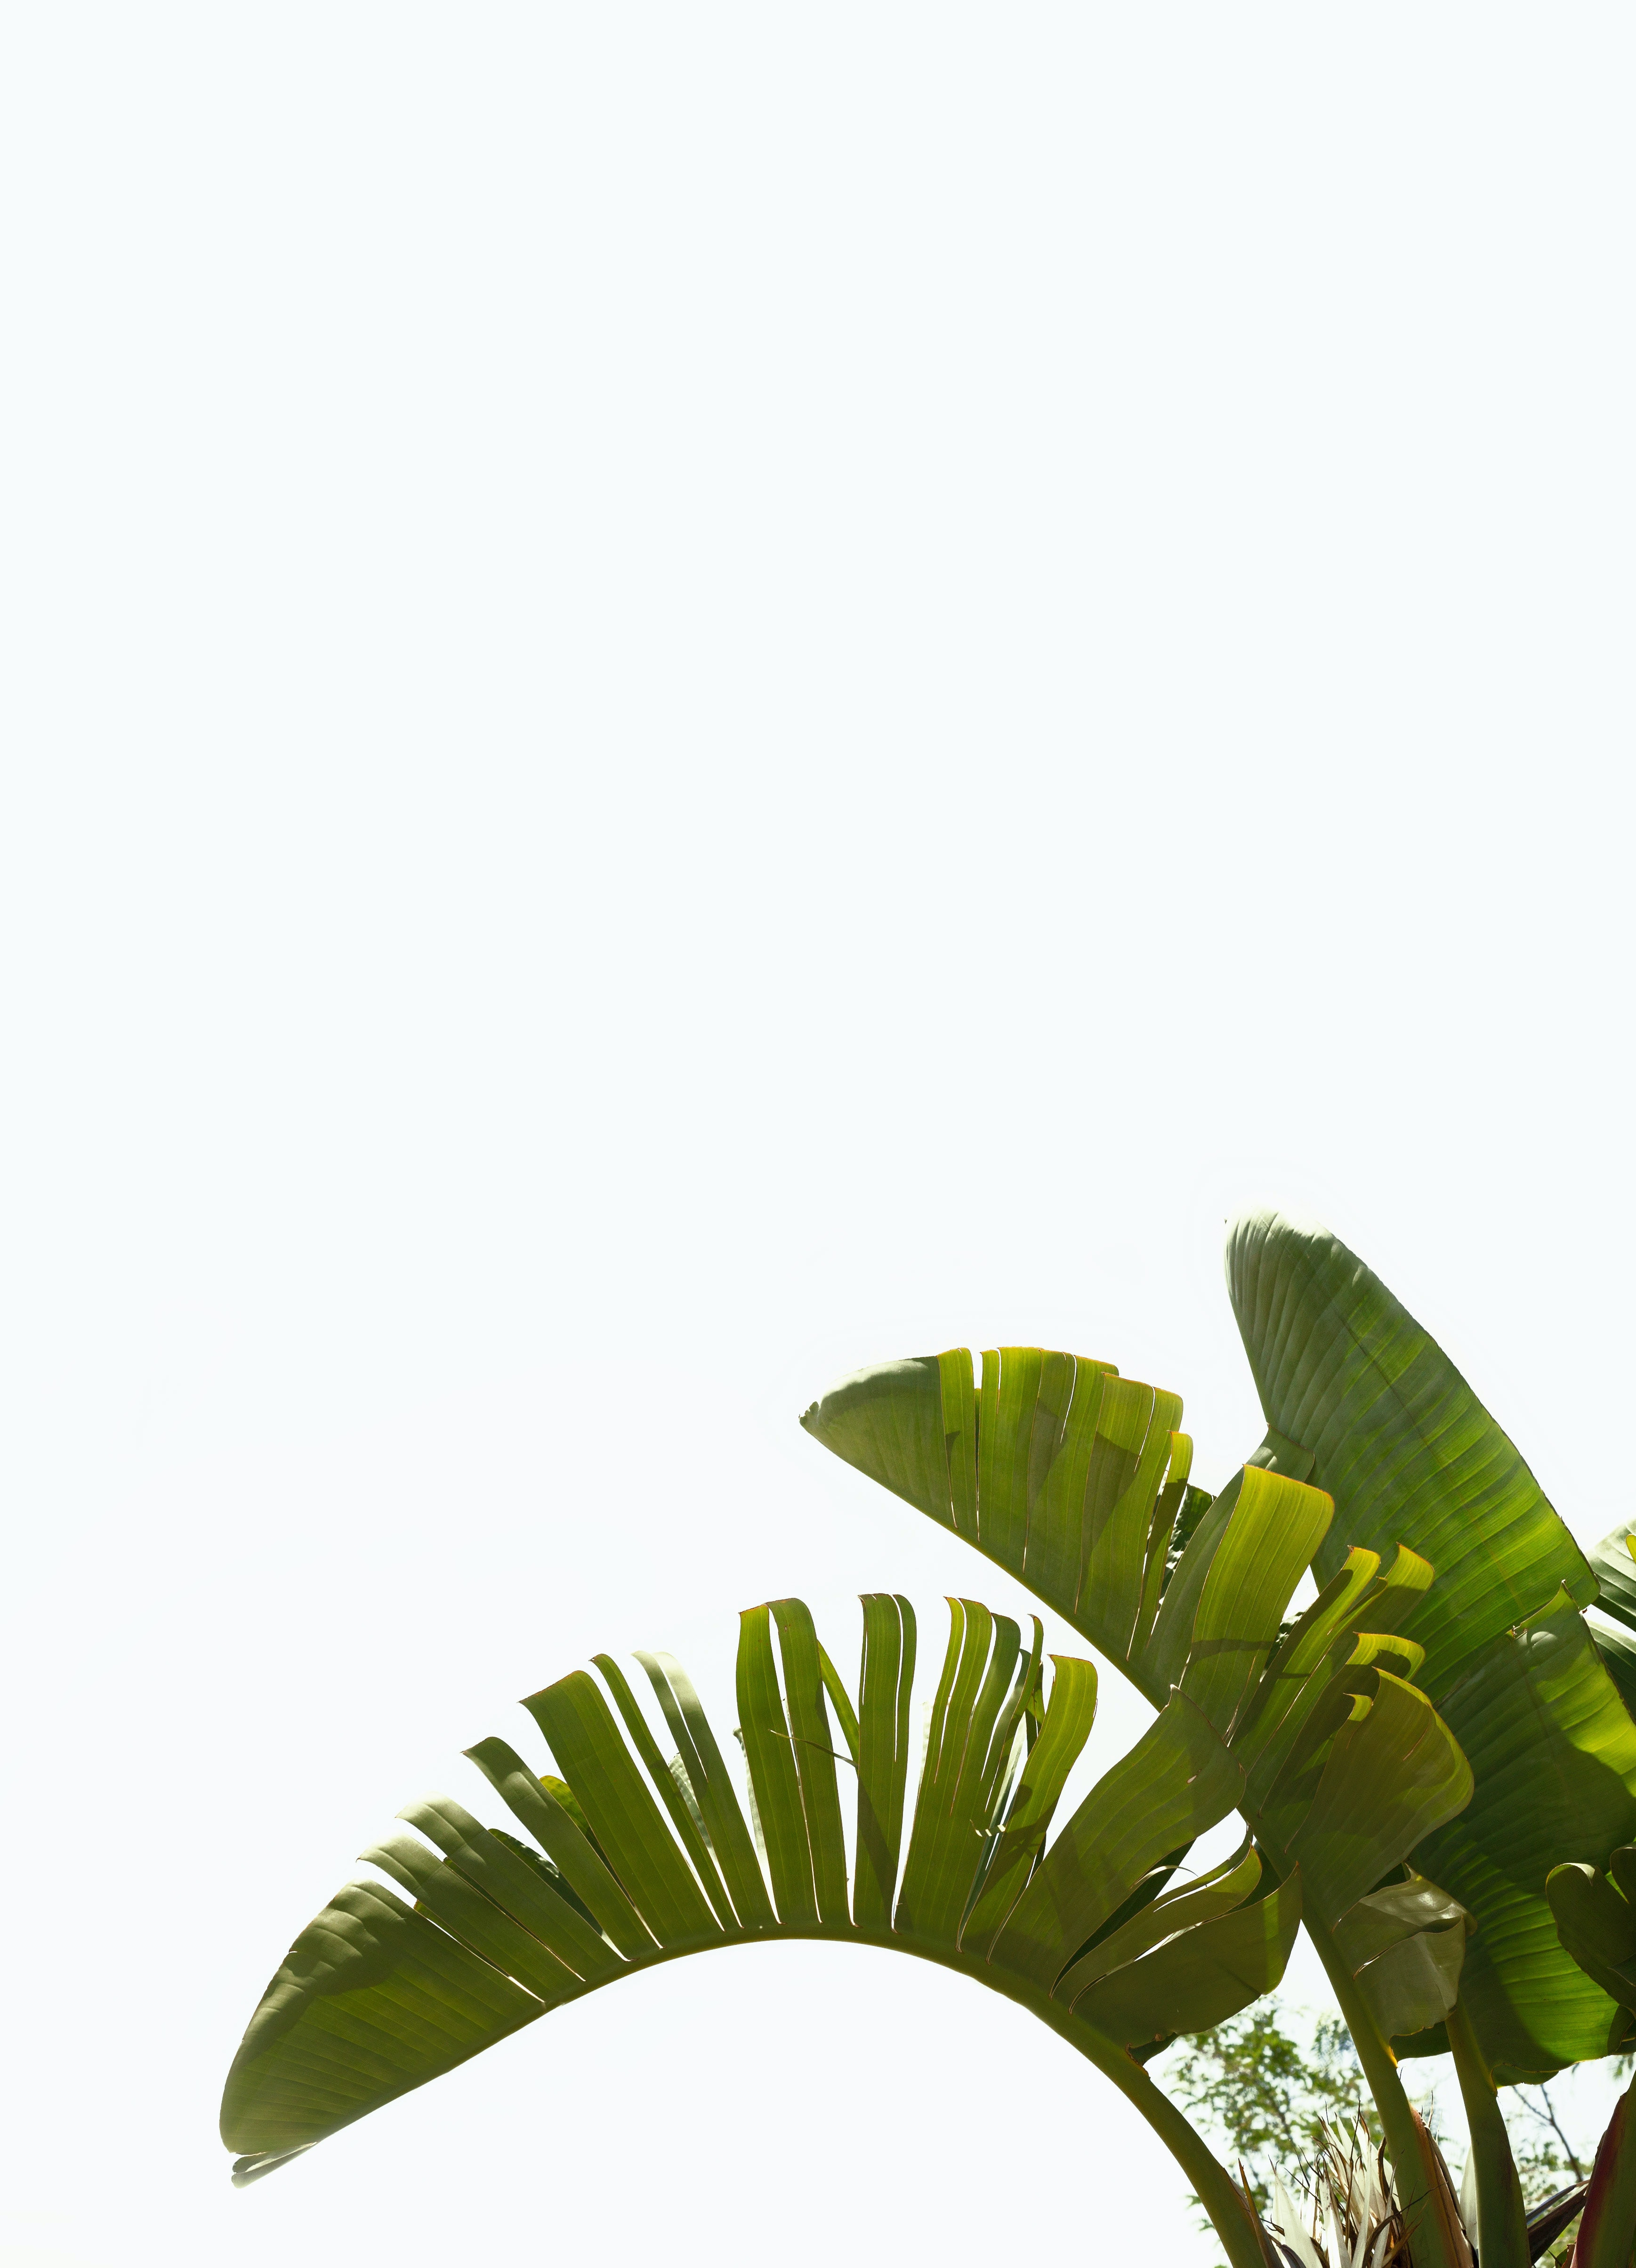 Green leaves on top of a plant under a bright white sky.